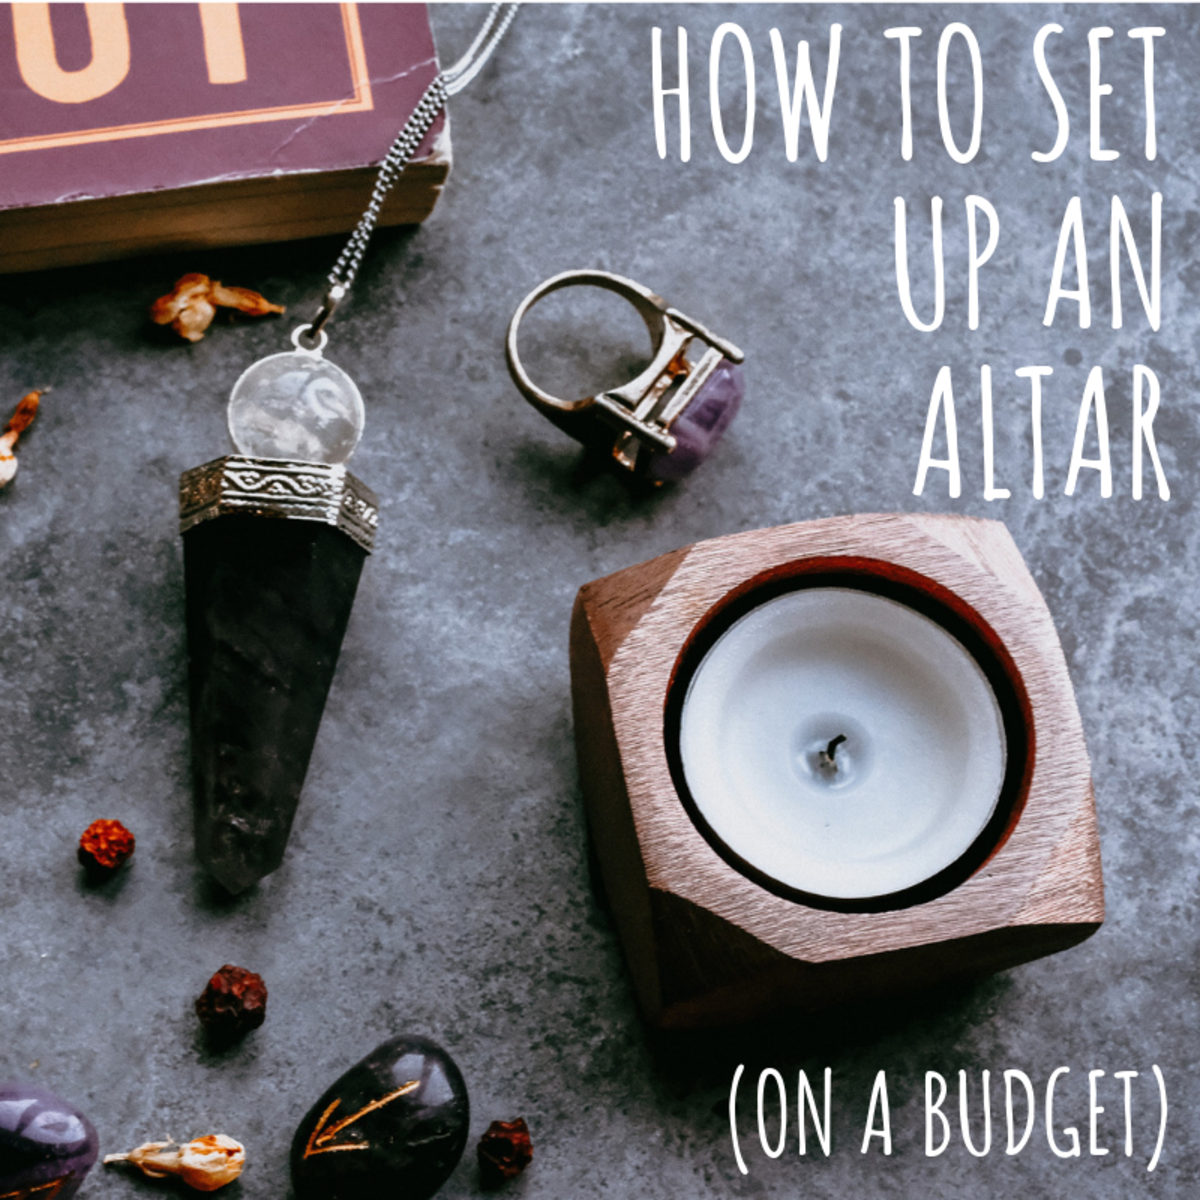 Setting up your altar doesn't have to break the bank—do it on the cheap by being creative and resourceful.